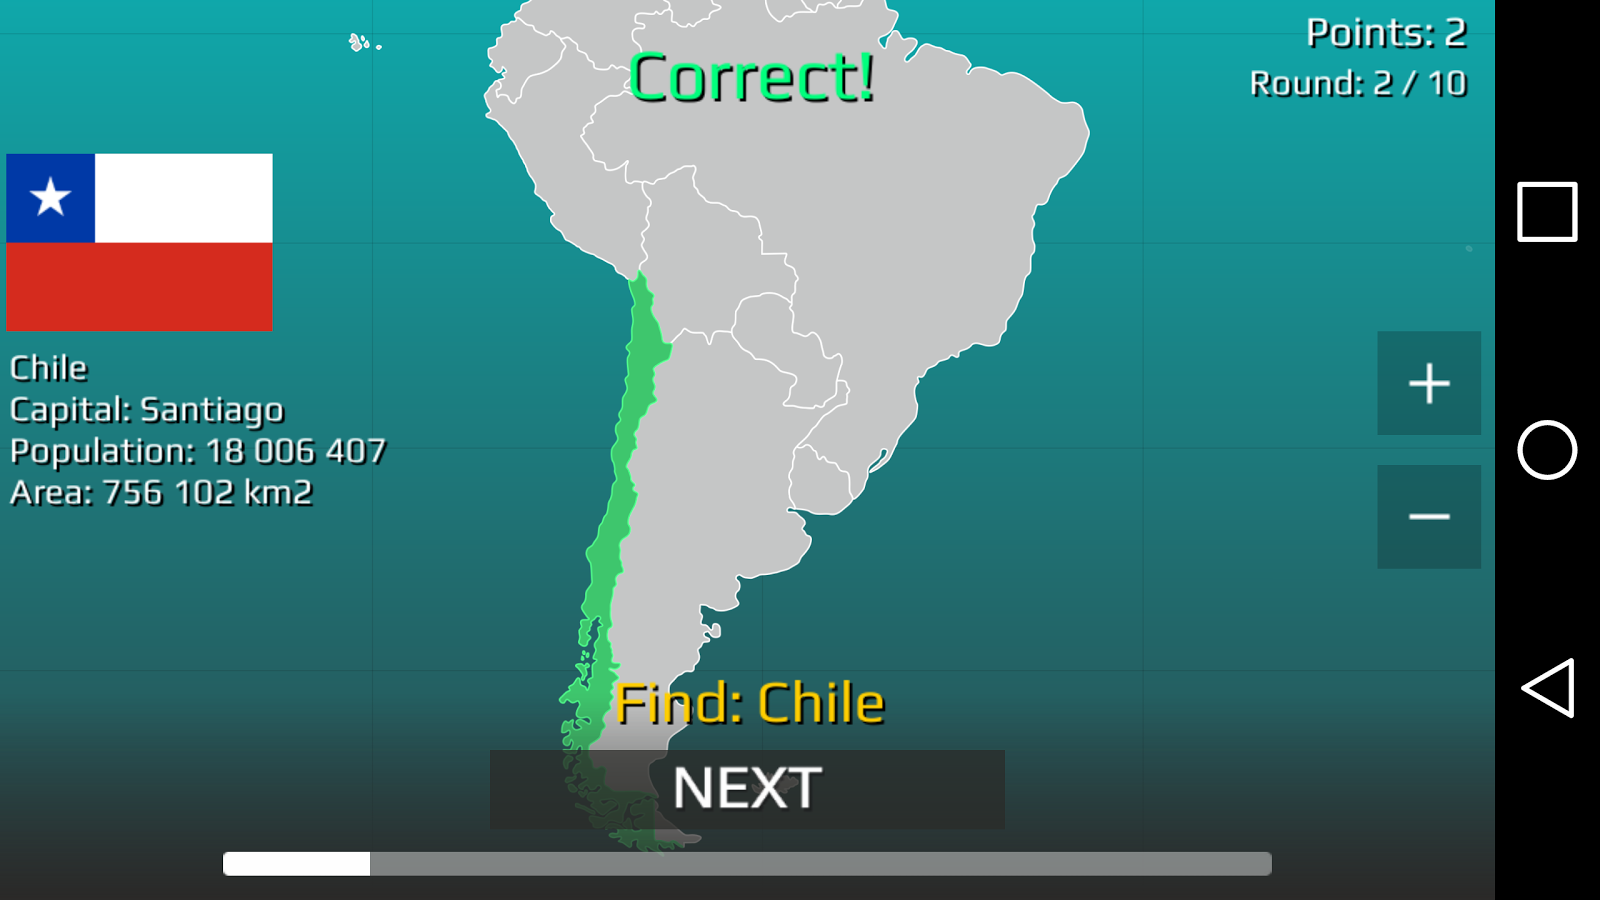 World Map Quiz Android Apps On Google Play - World map quiz easy